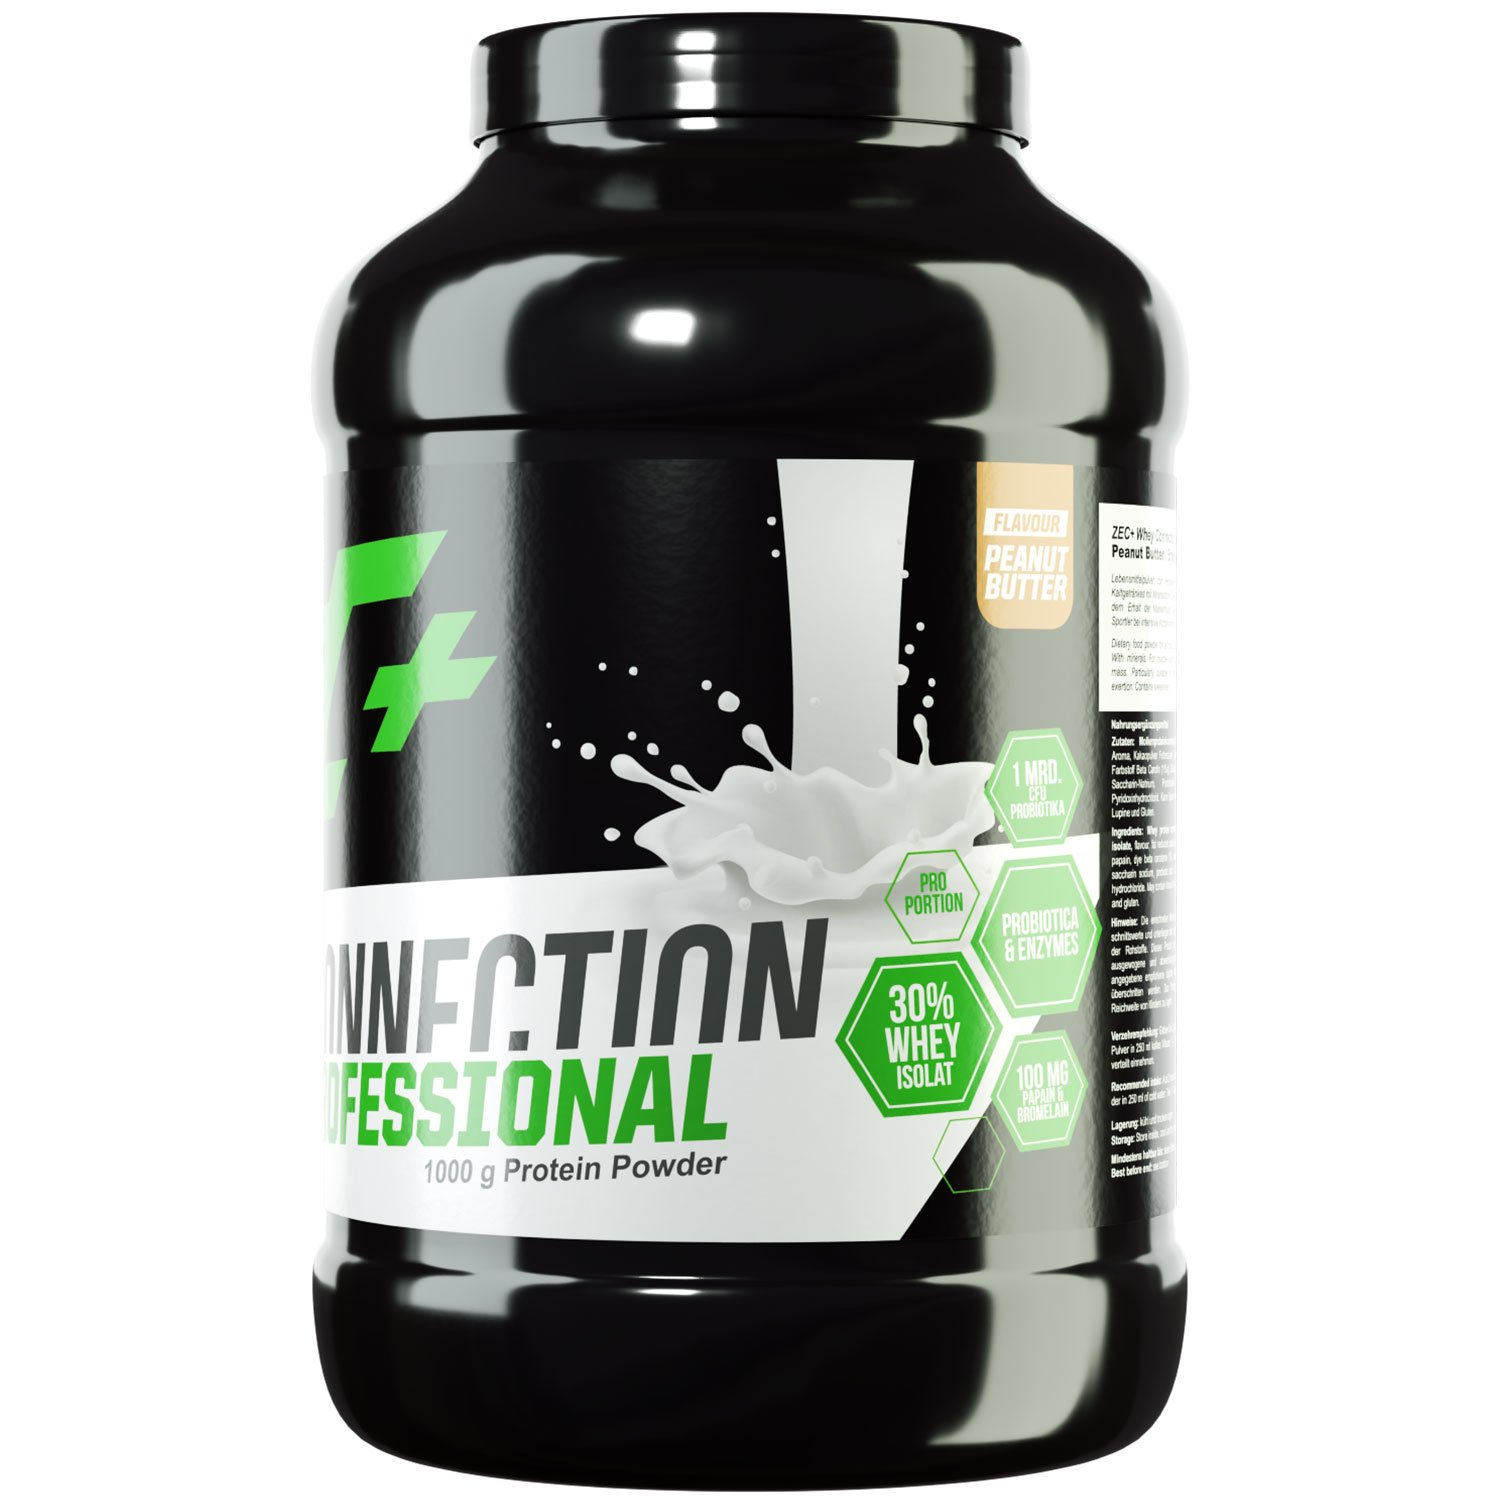 Whey Connection Professional